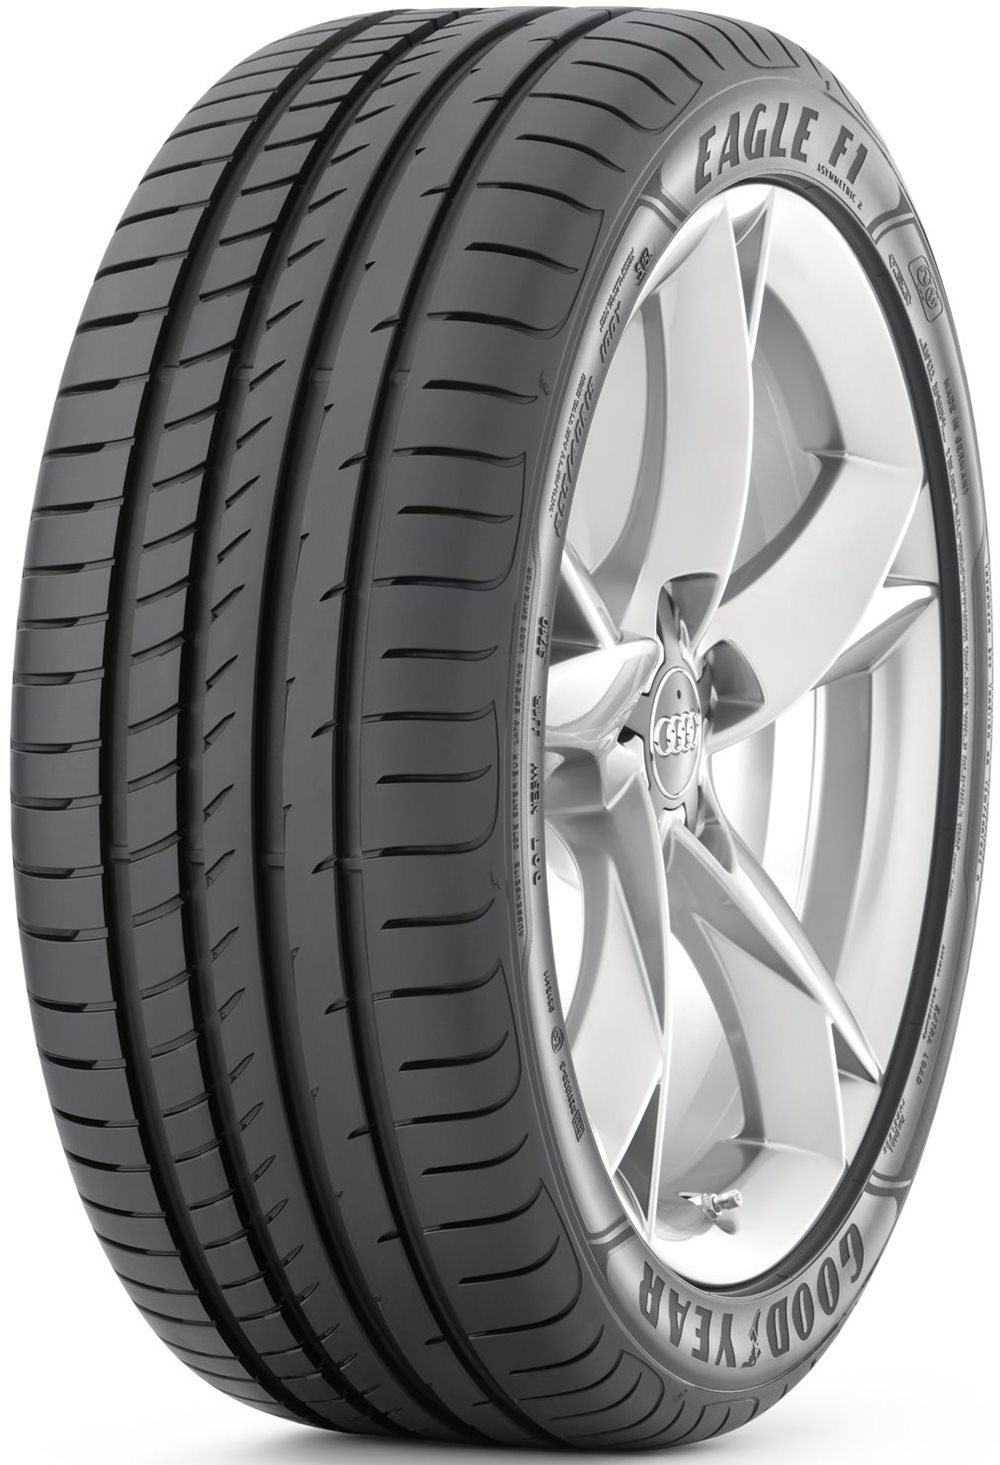 GOODYEAR EAGLE F1 ASYMMETRIC 2 255/45 R 18